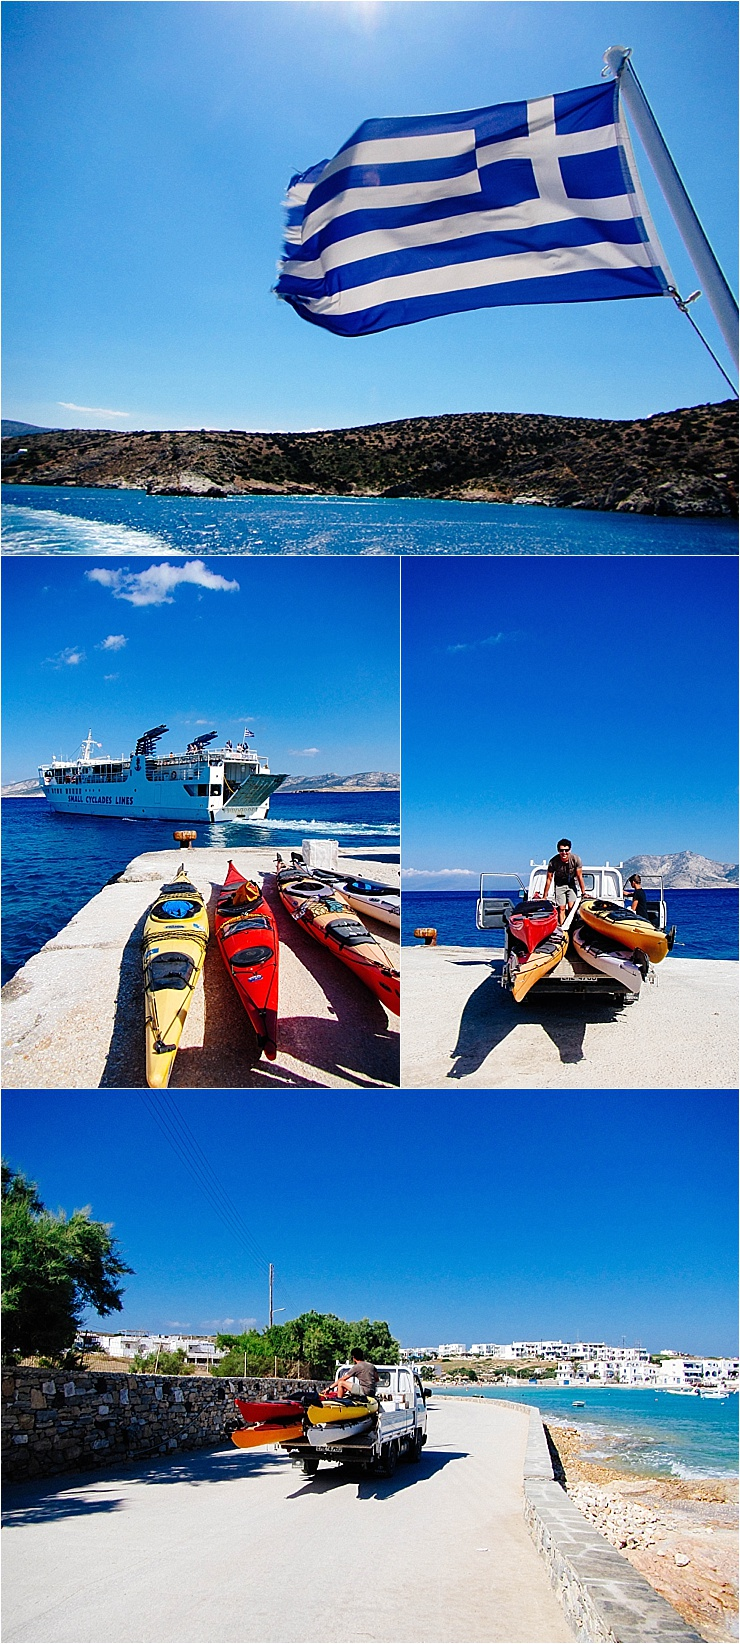 Getting ready for a sea kayaking adventure in Greece by Mister Pretty's Pictures